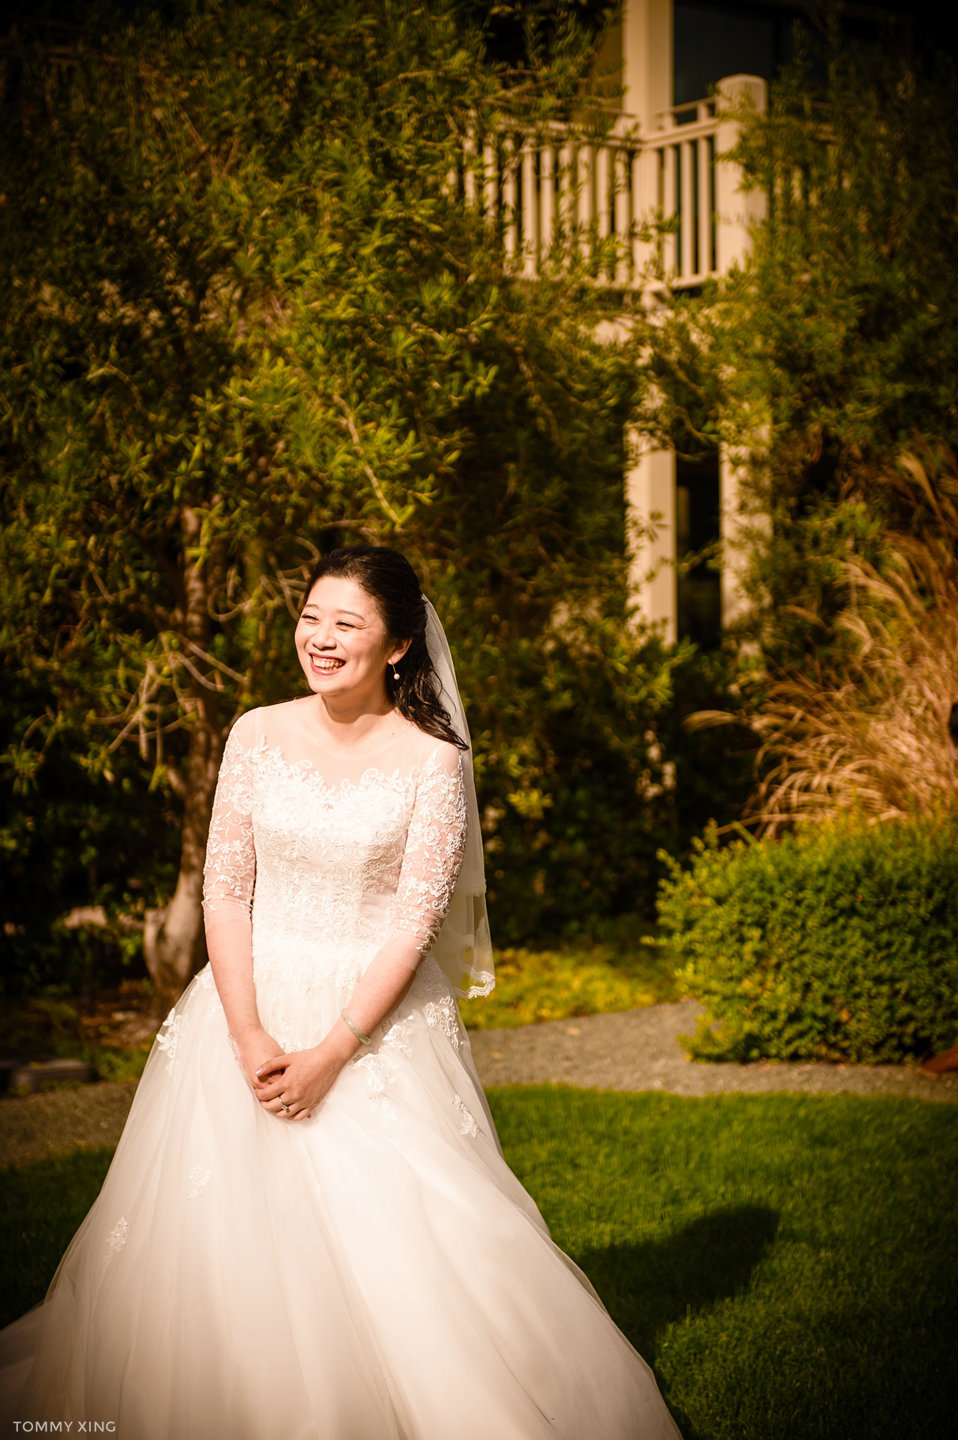 San Francisco Wedding Photography Valley Presbyterian Church WEDDING Tommy Xing Photography 洛杉矶旧金山婚礼婚纱照摄影师035.jpg